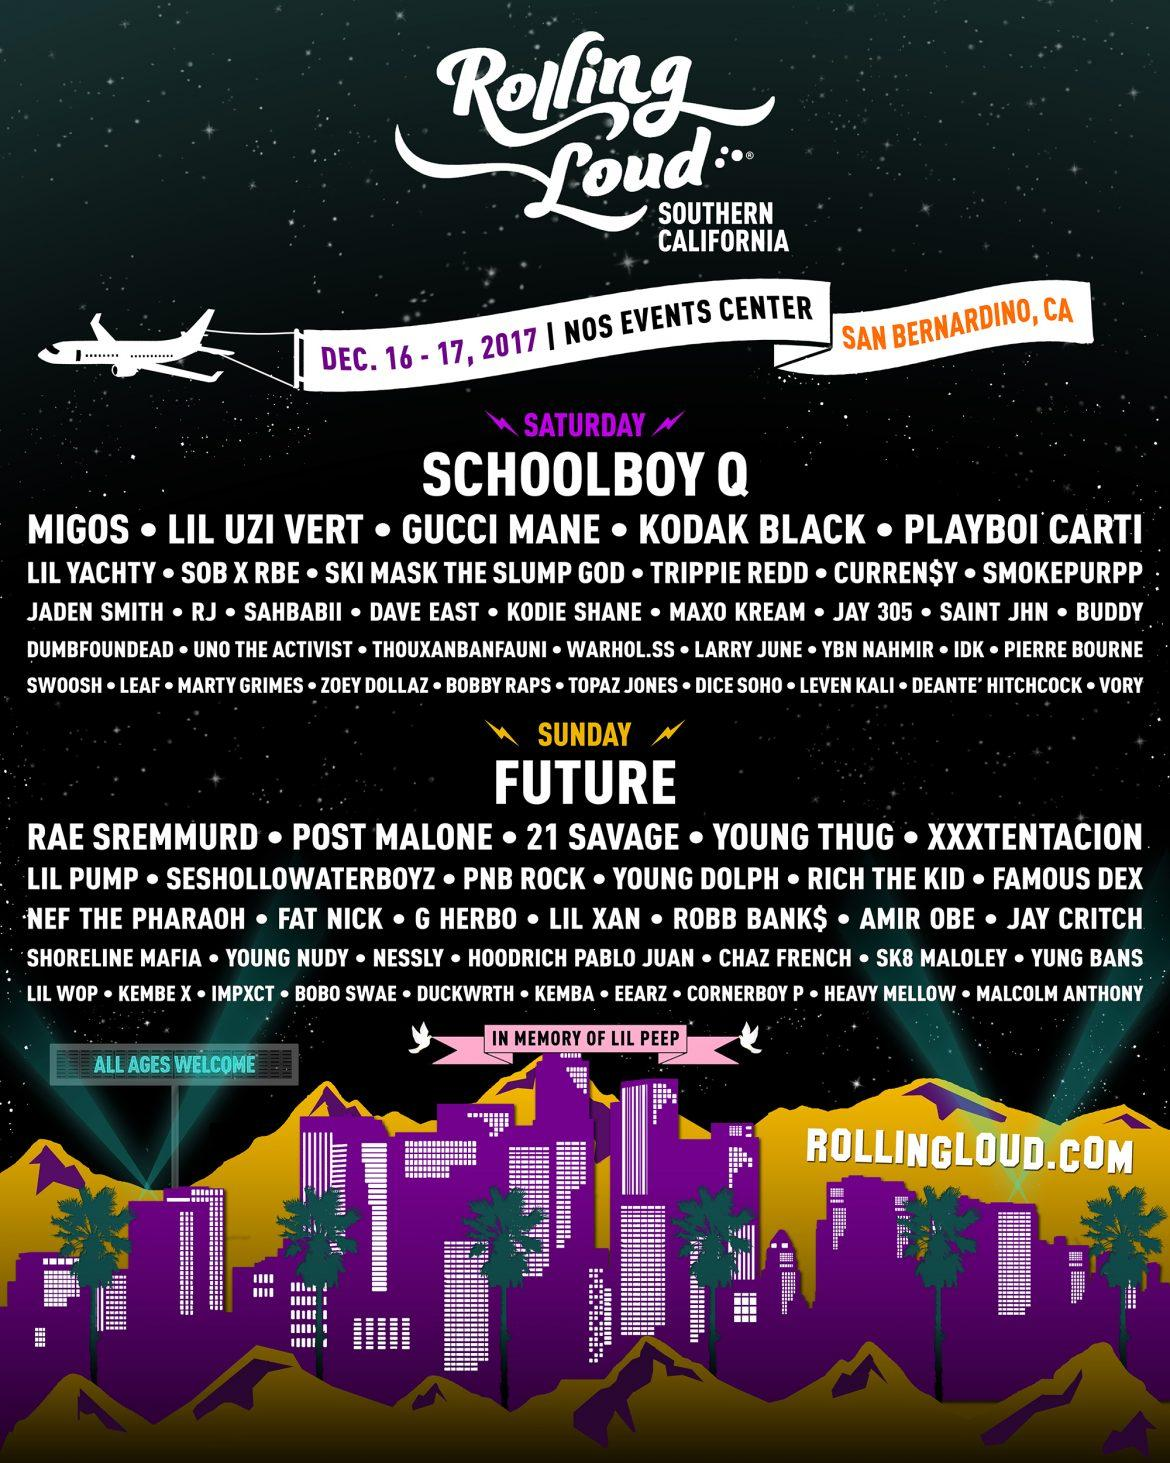 The+independent+festival+will+feature+both+big+and+underground+Hip-Hop+artists+in+their+first+SoCal+edition+of+the+festival.+Photo+Credit%3A+Courtesy+of+Rolling+Loud.